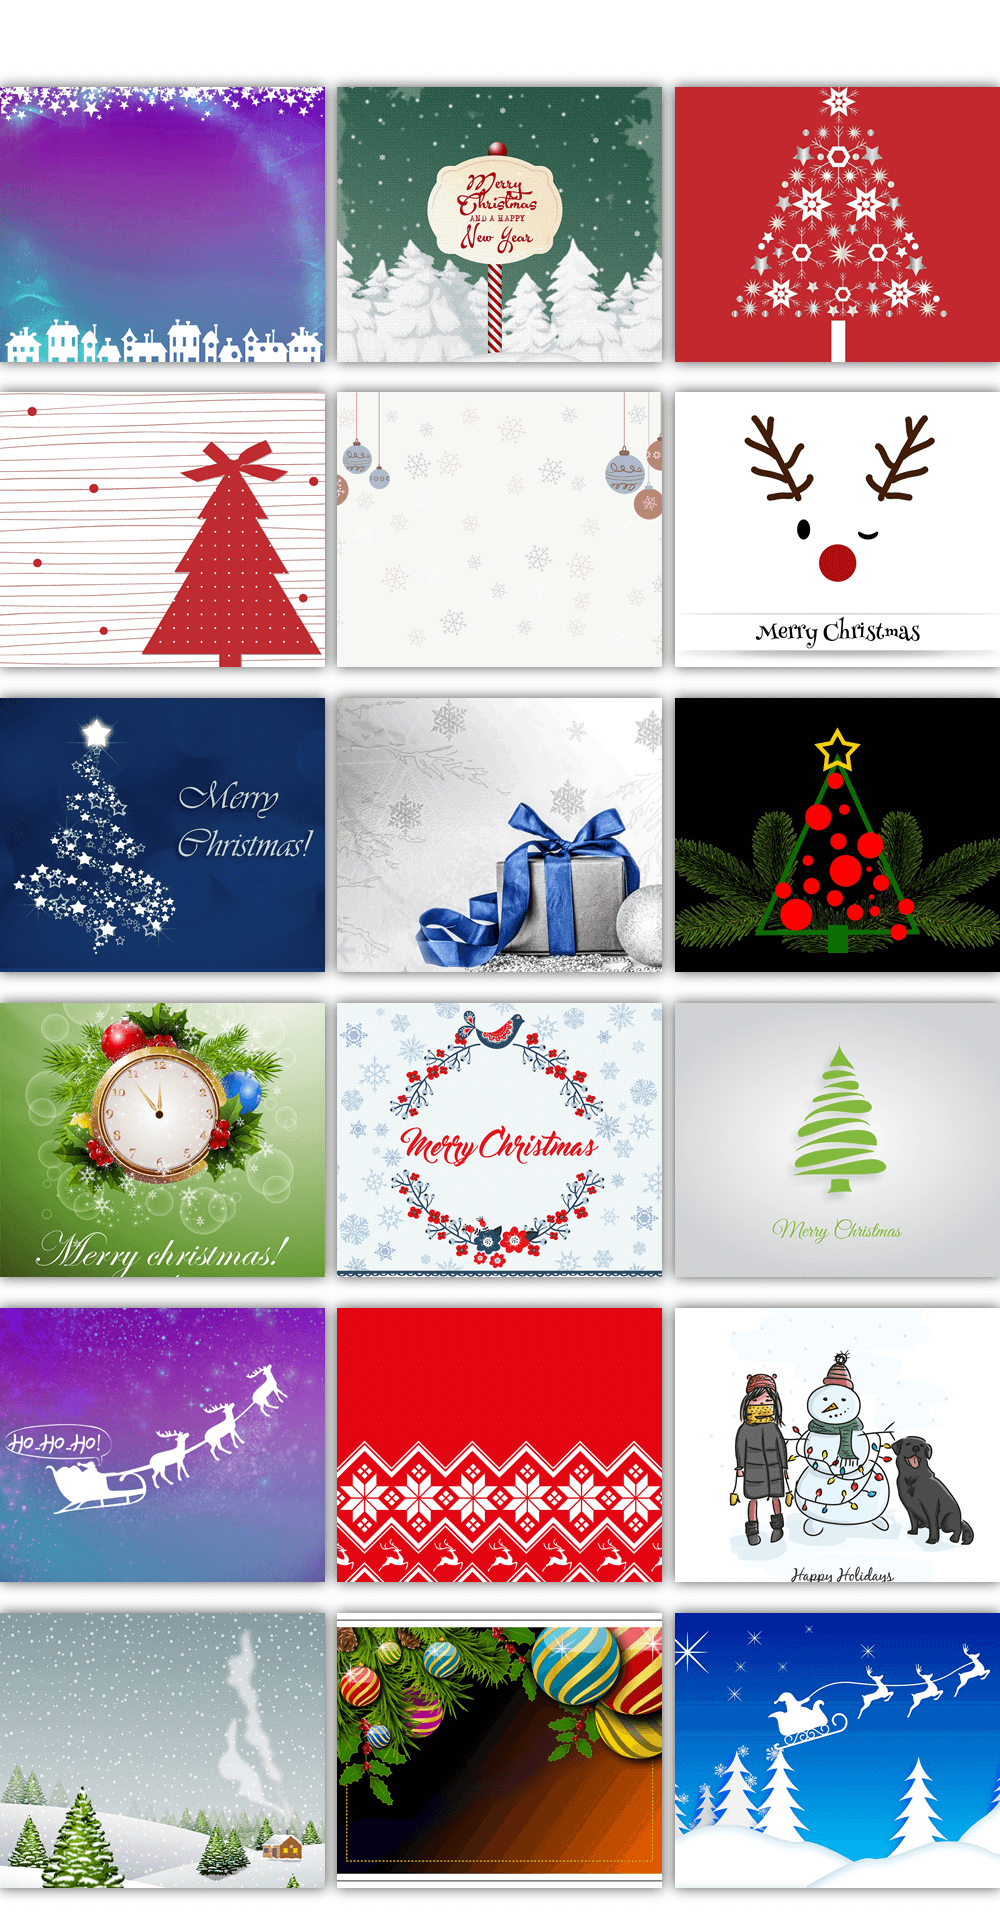 Christmas Card Cover Images 2